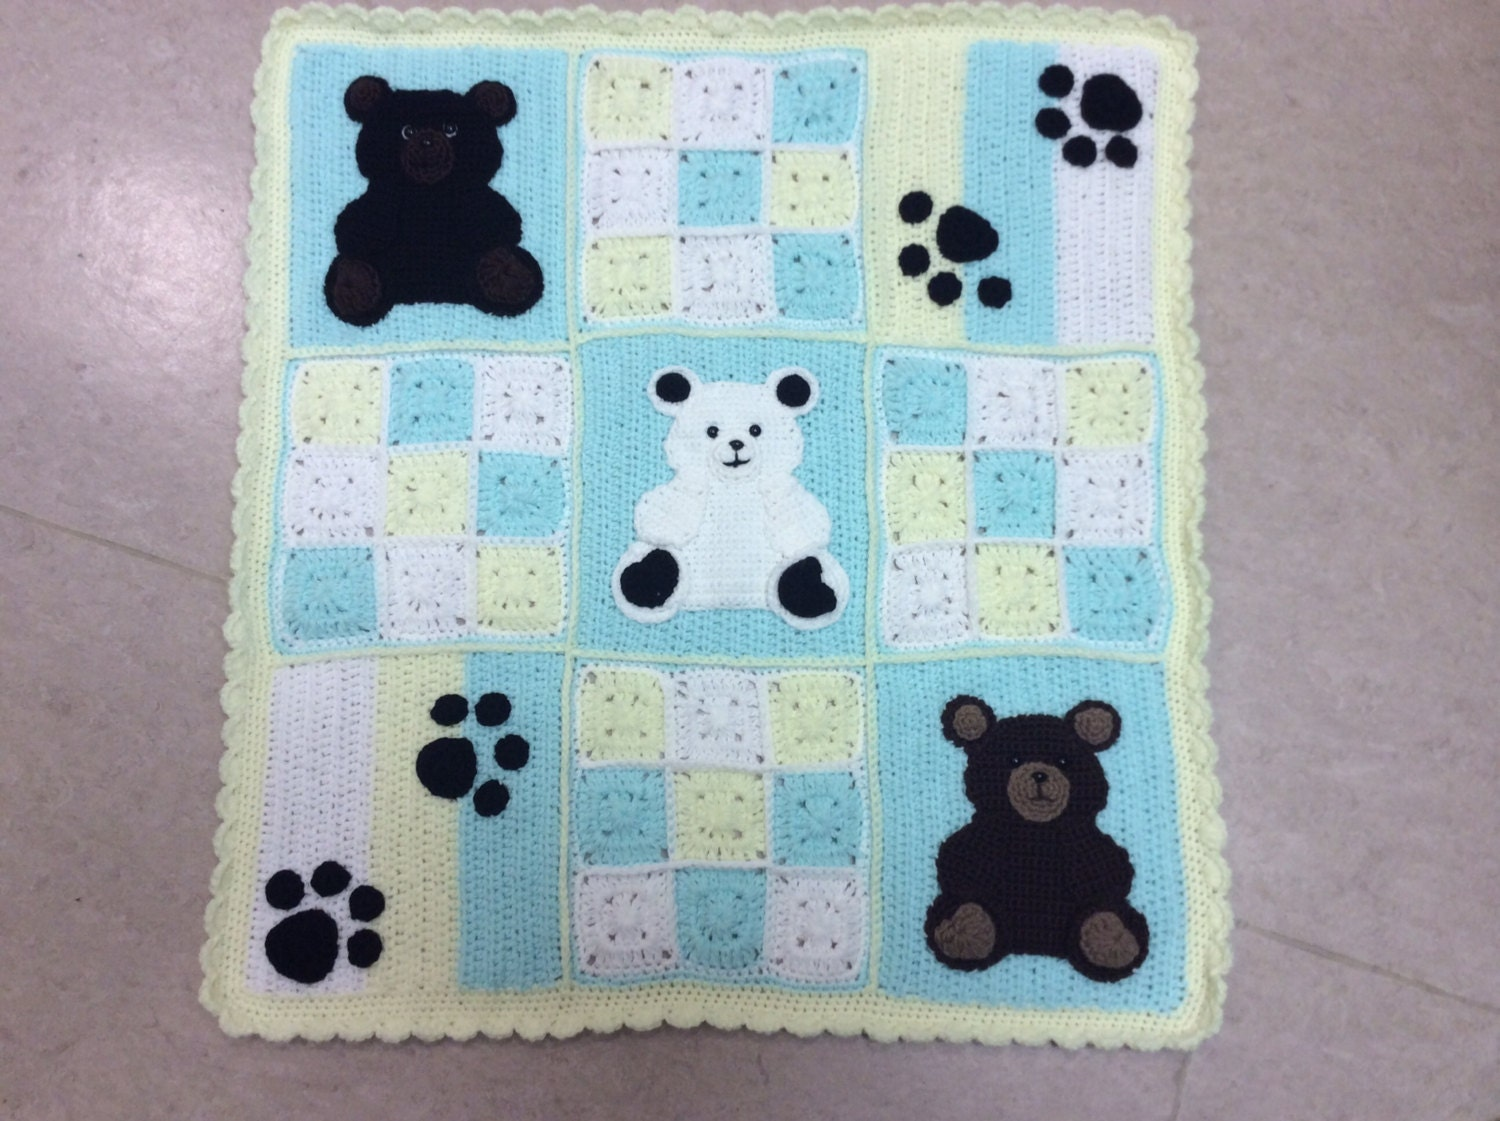 Knitting Pattern For Teddy Bear Baby Blanket : Crochet baby blanket pattern pdf teddy bears and bear paws